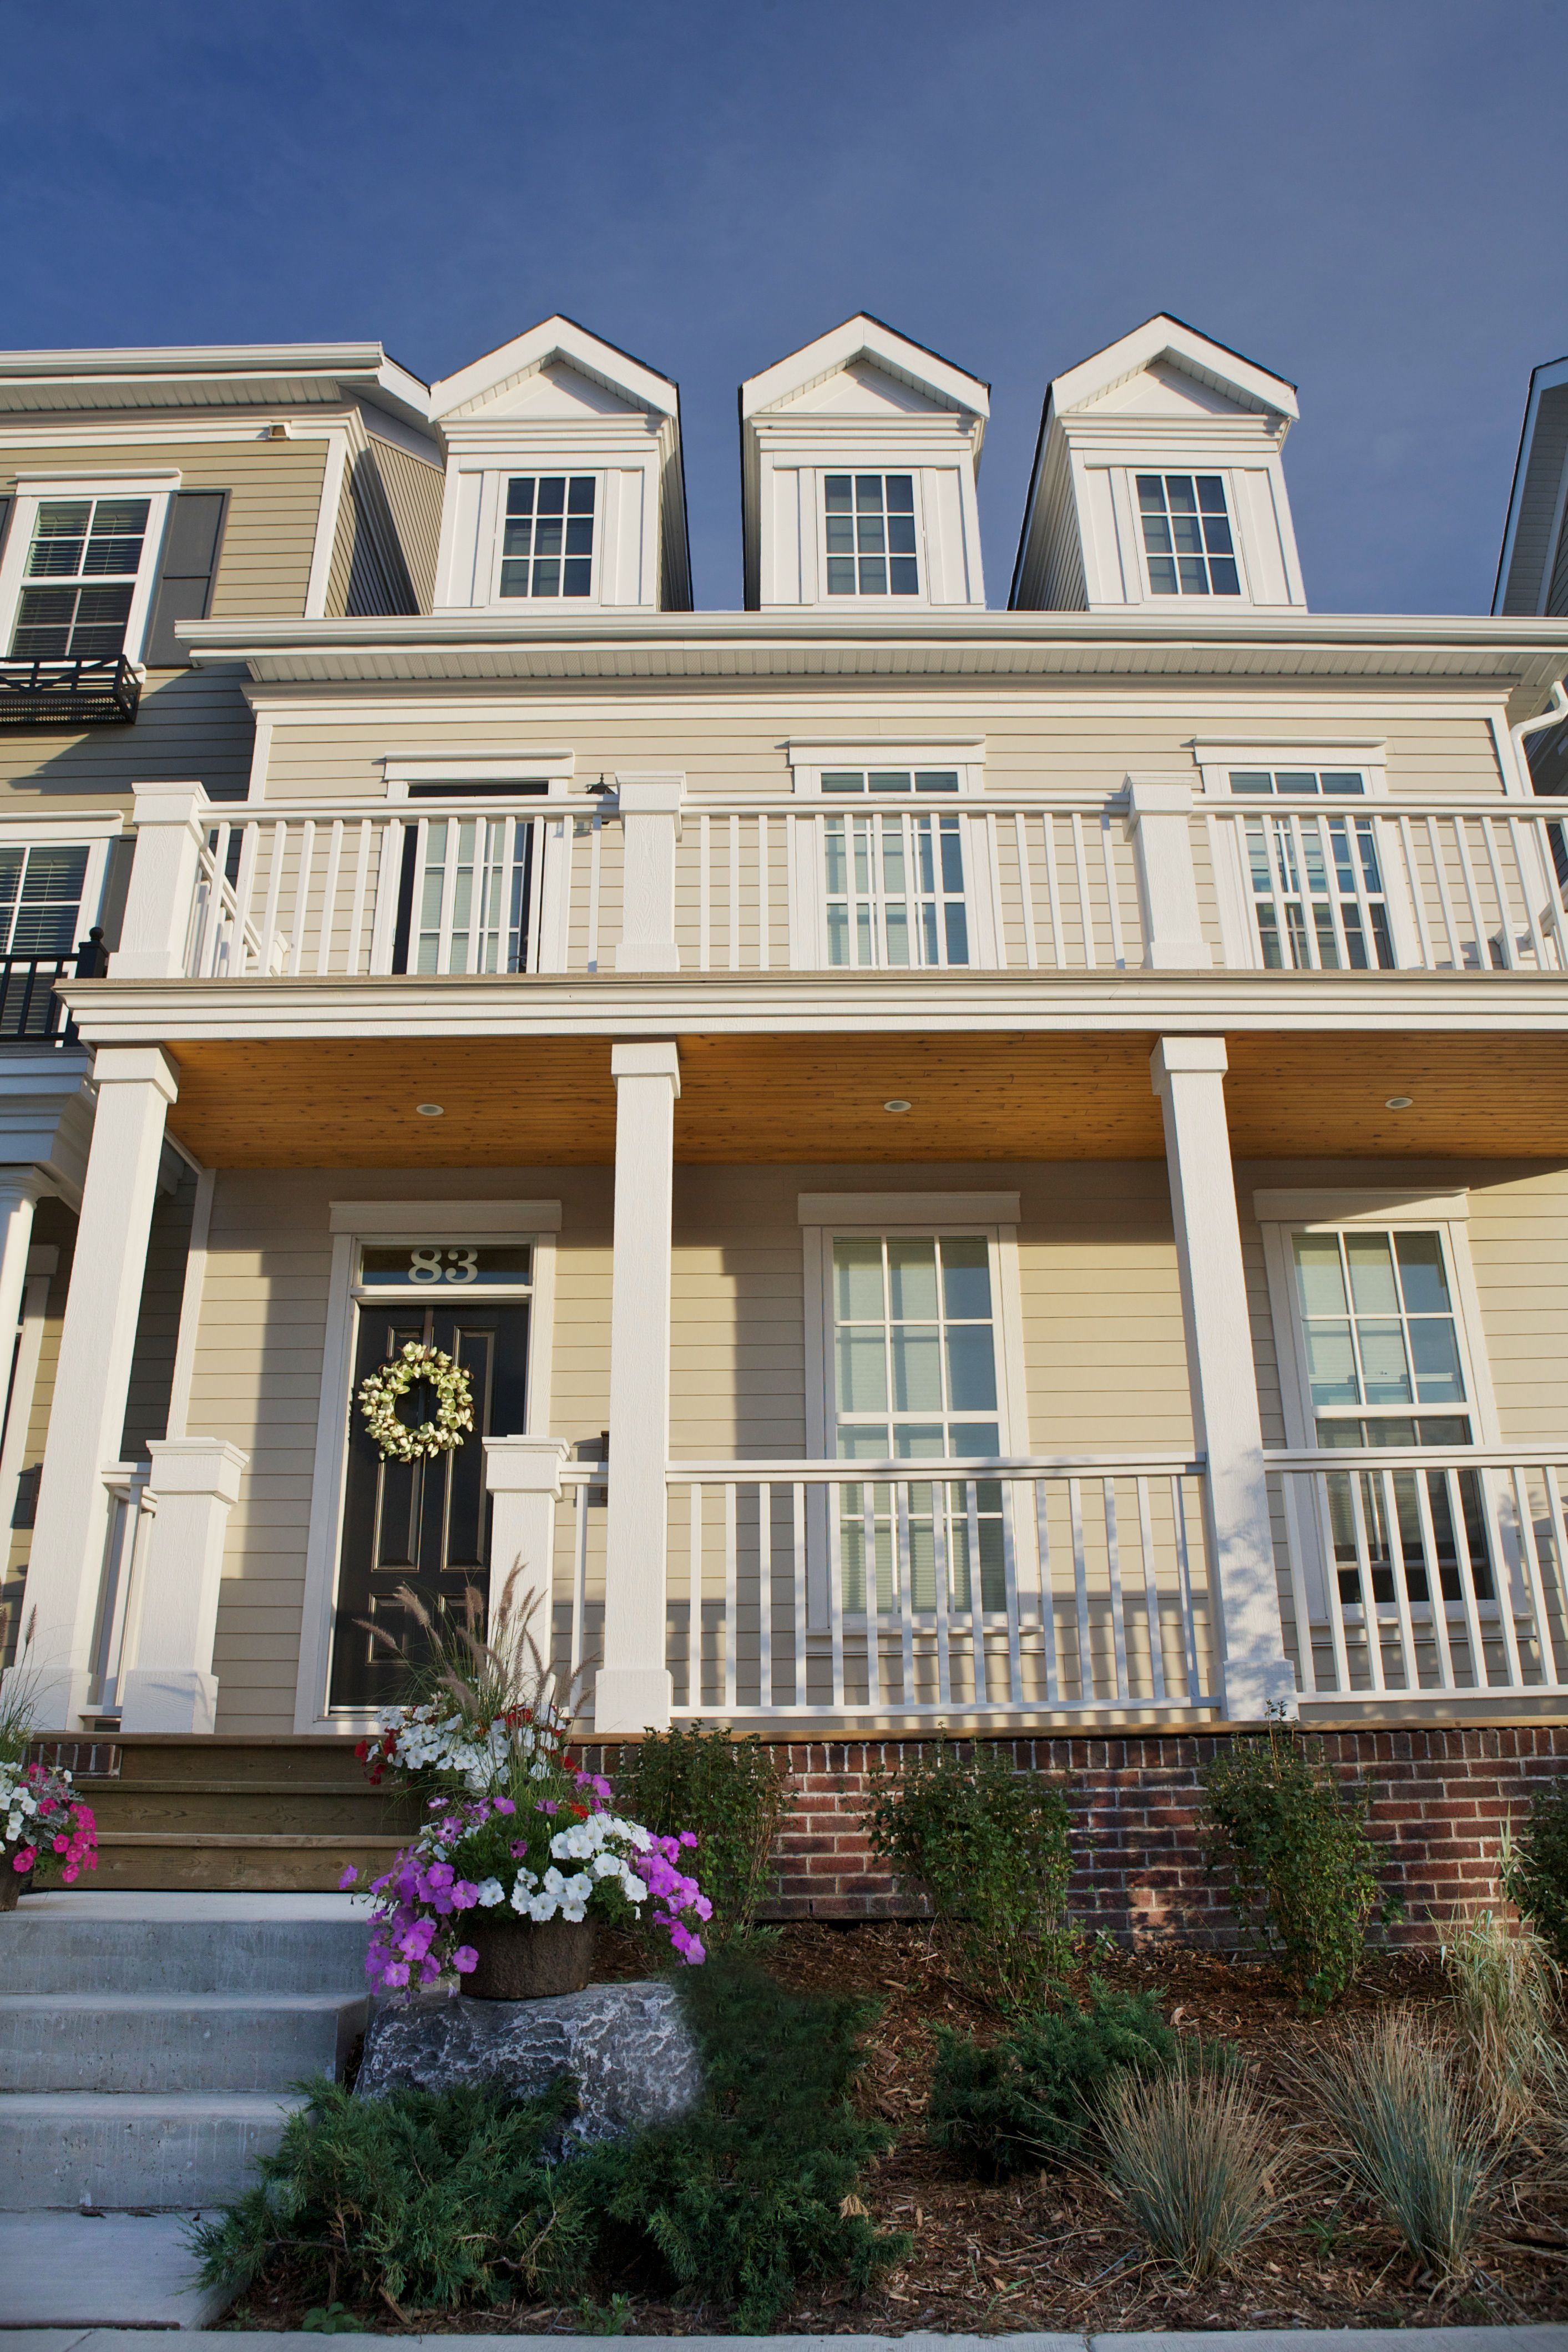 Colonial Homes With Dormer Windows Custom Window Boxes James Hardie Siding And Brick Victoria Cross Townhomes In Colonial House House Styles Hardie Siding